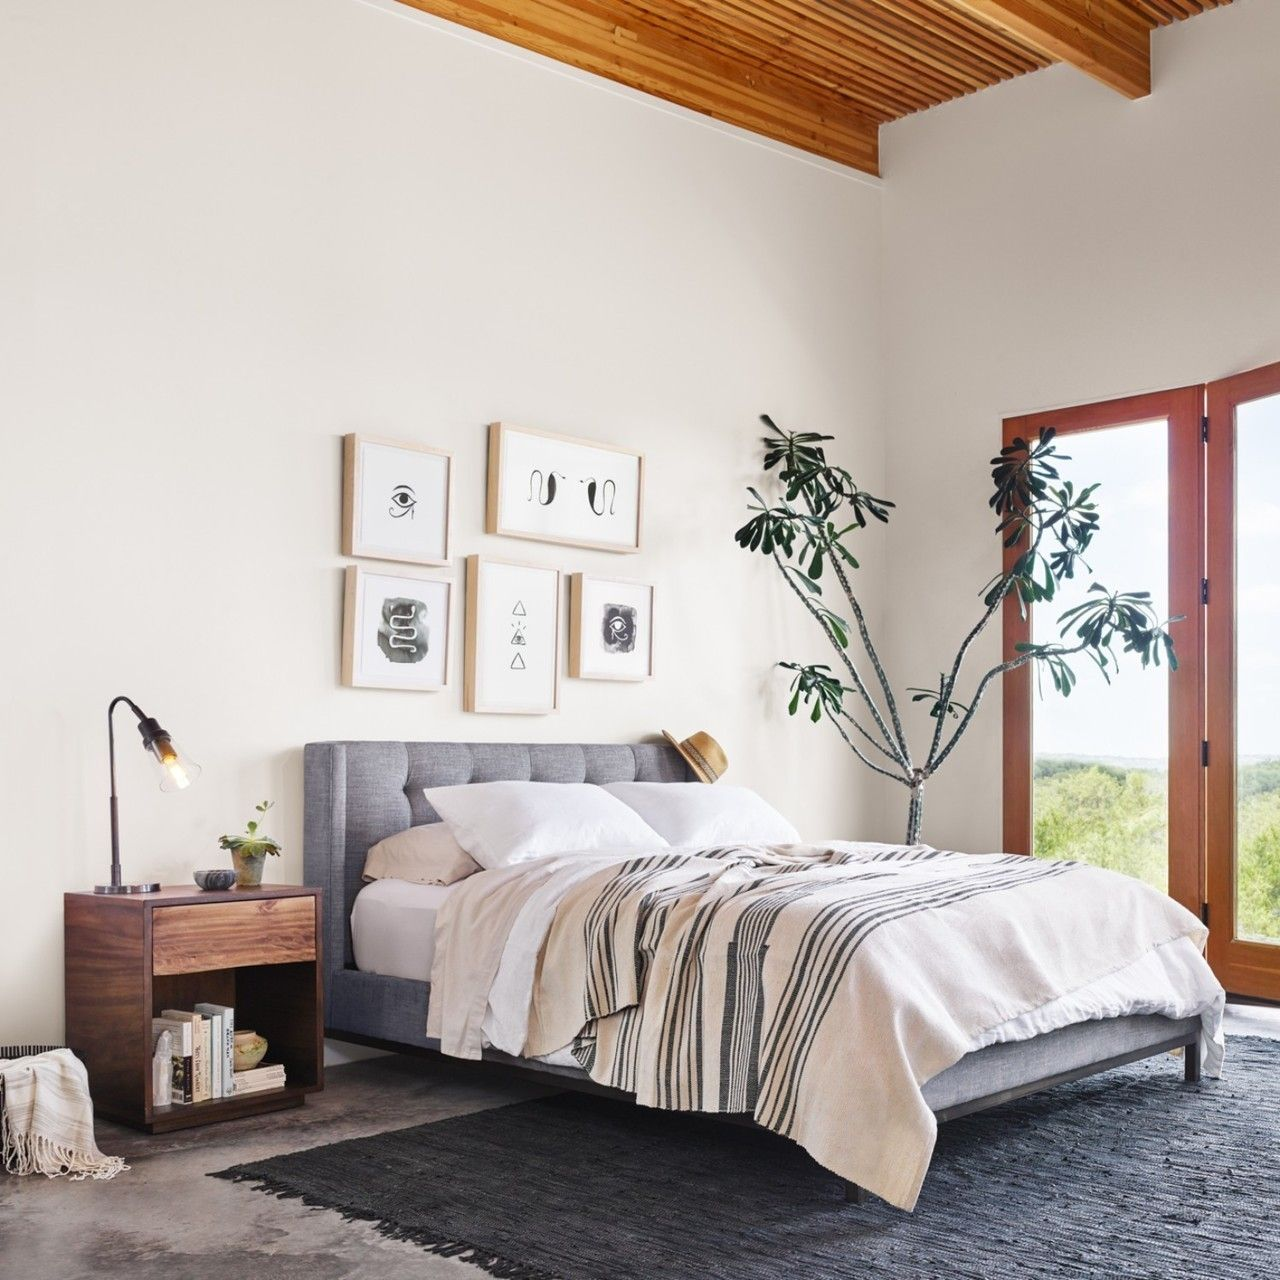 Loft bedroom style  Newhall BoxTufted Gray Fabric Shelter Platform Bed  King  Bedroom